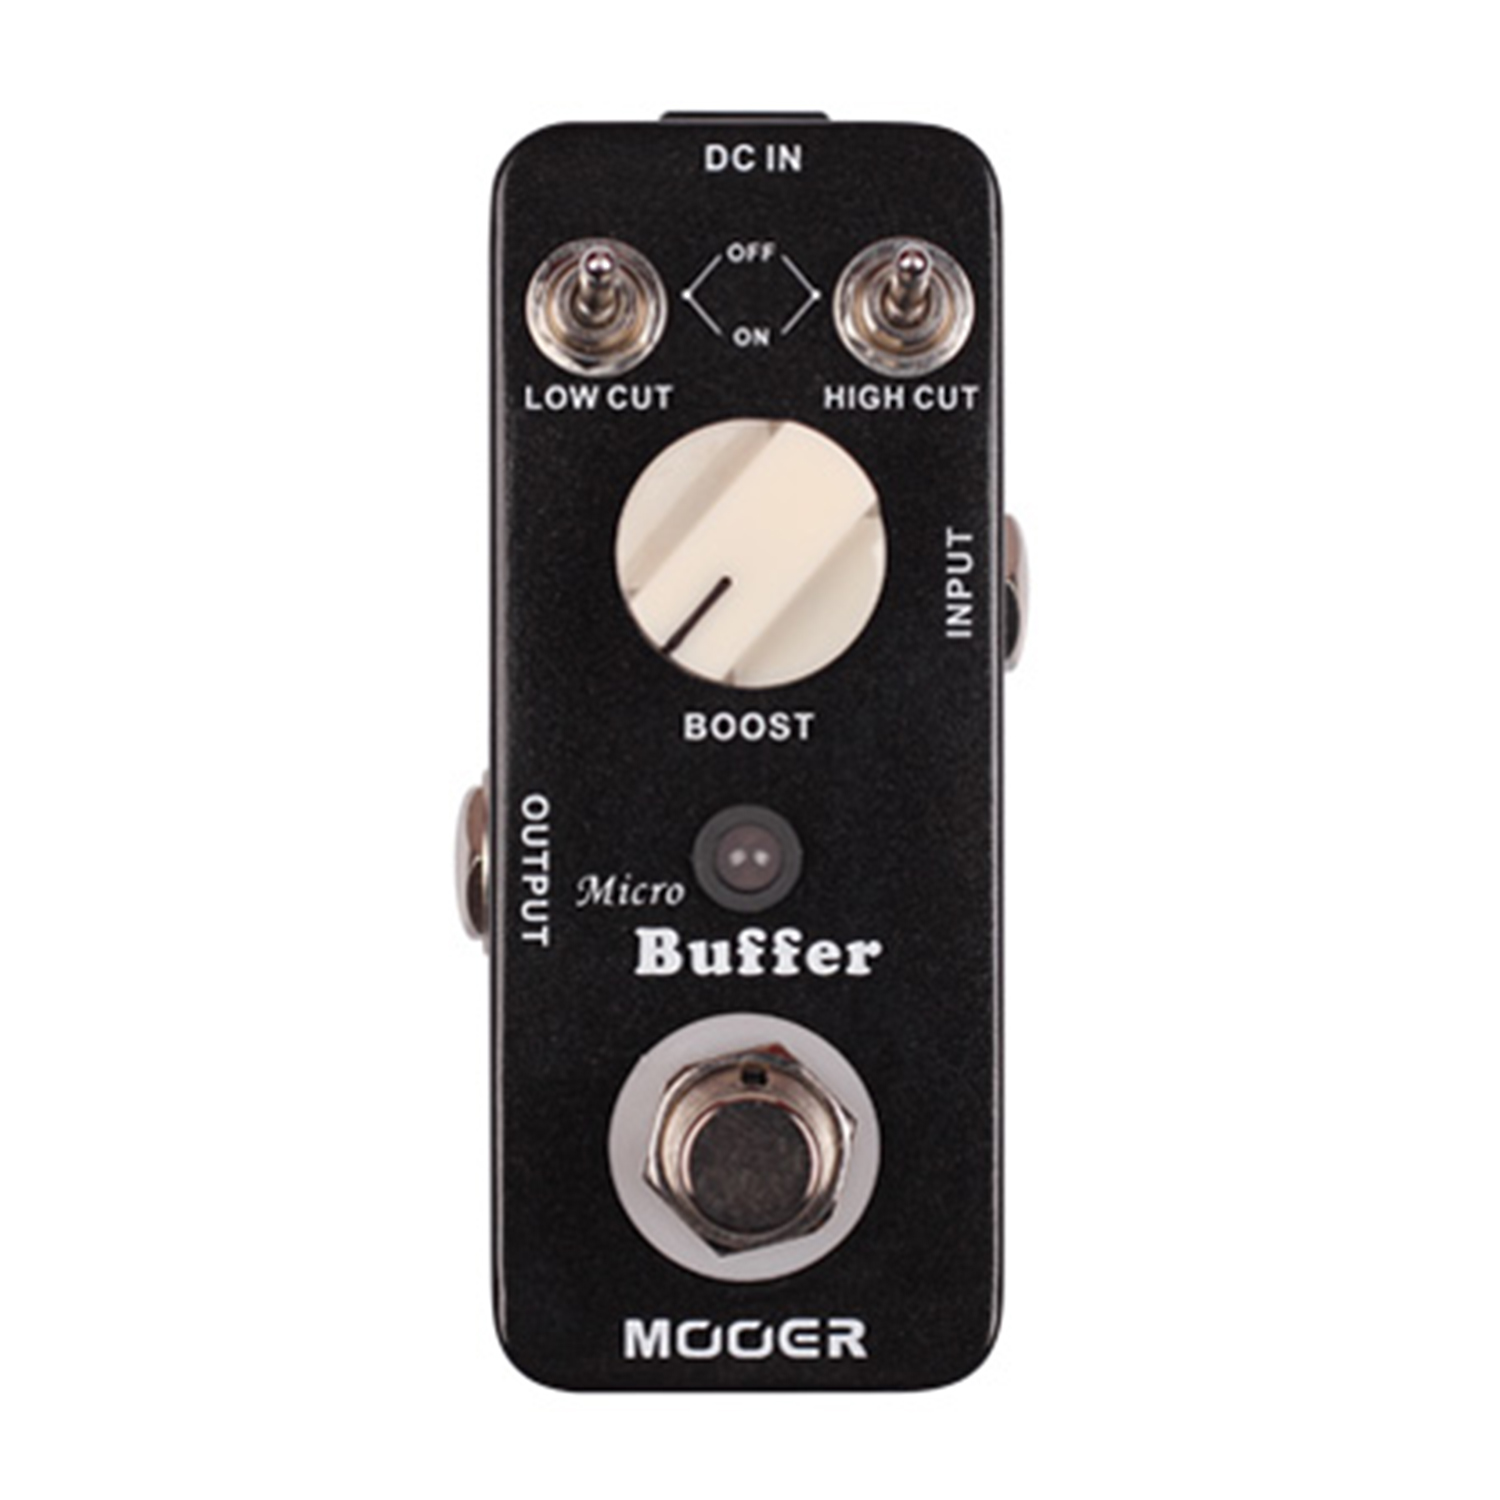 Mooer Micro Buffer Guitar Effect Pedal Boost Knob High Cut Low Cut Switch цена и фото